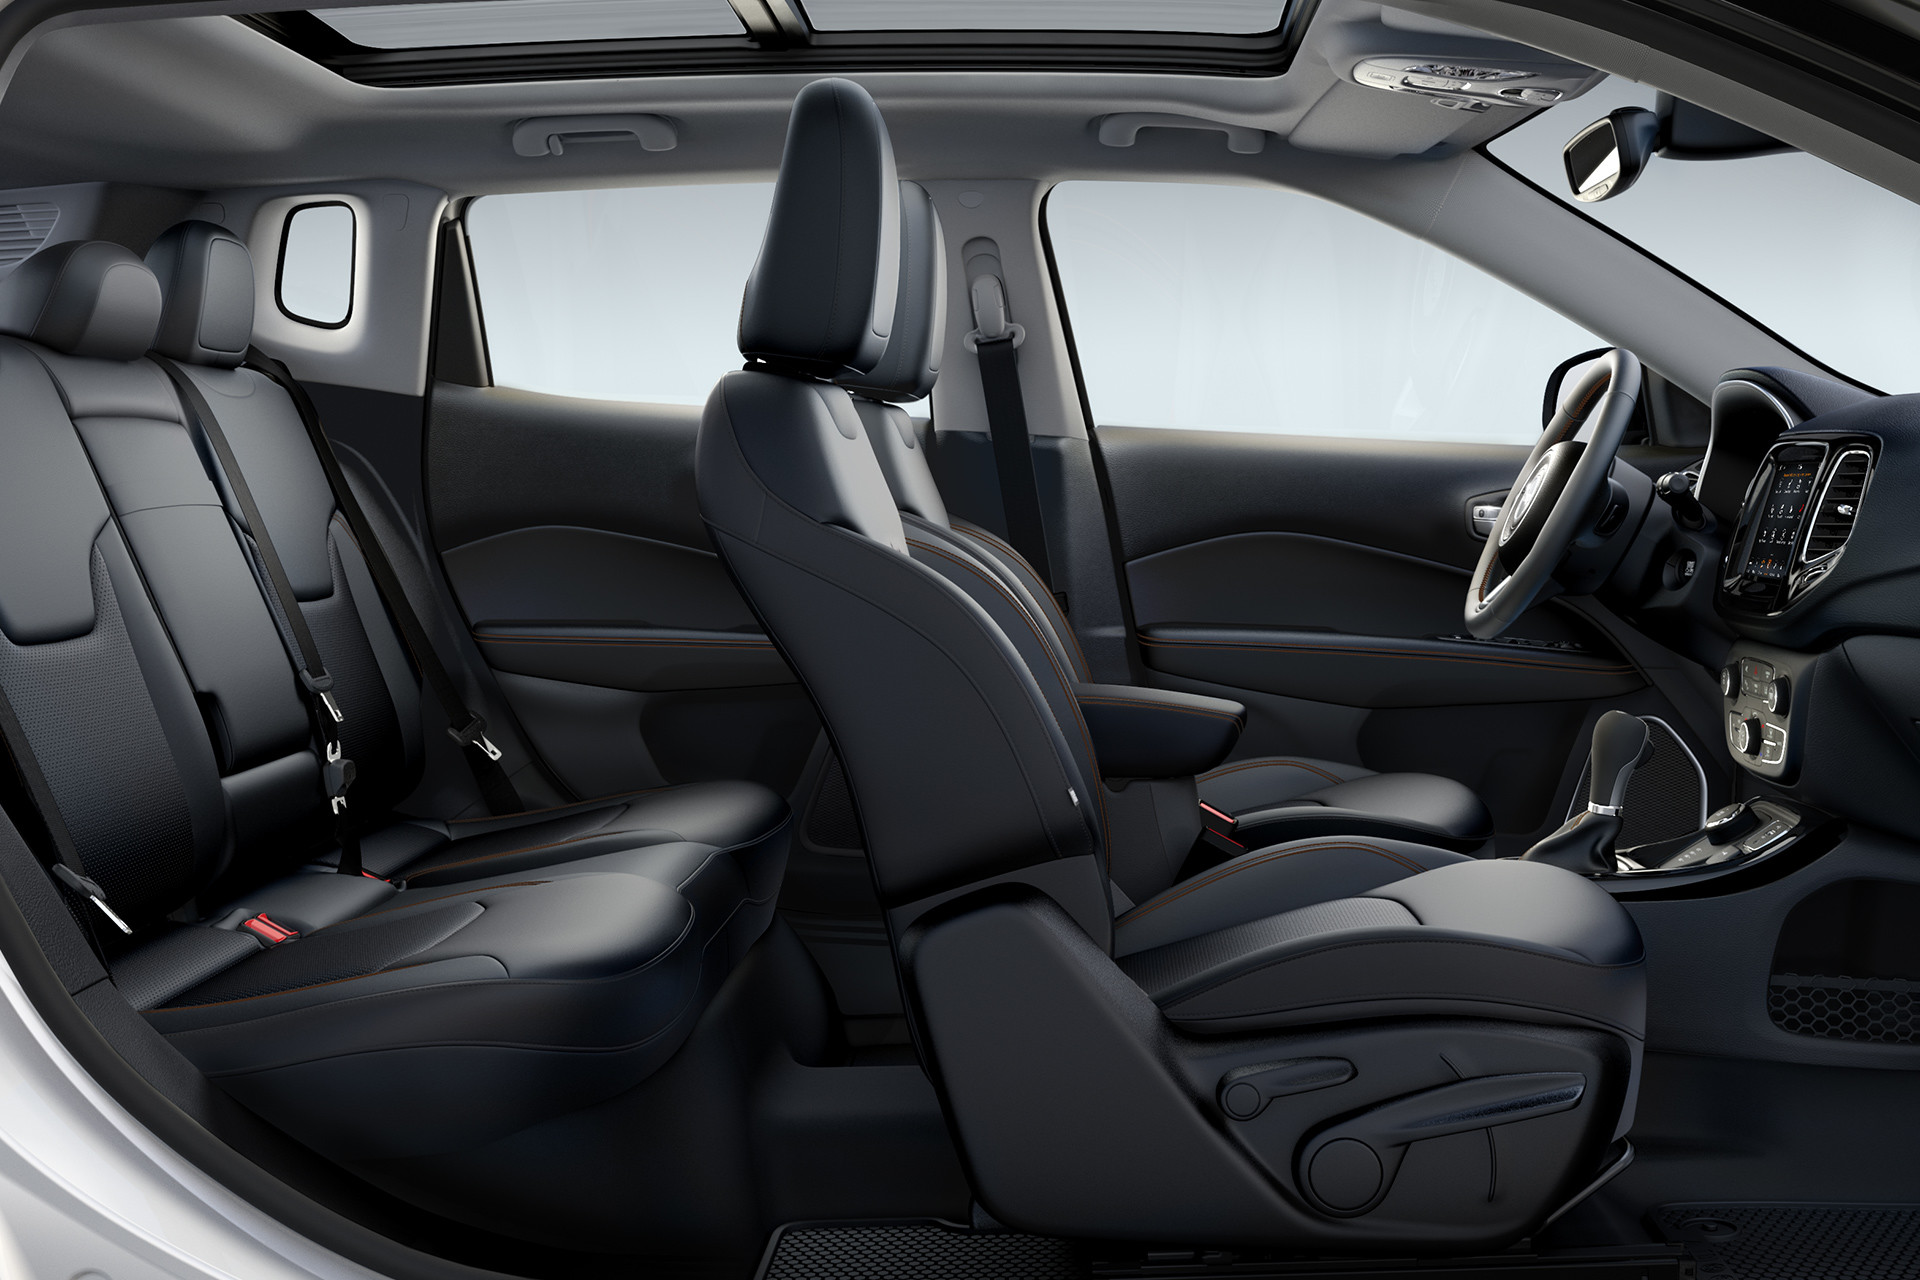 2019 Jeep Compass side view of black cloth seats